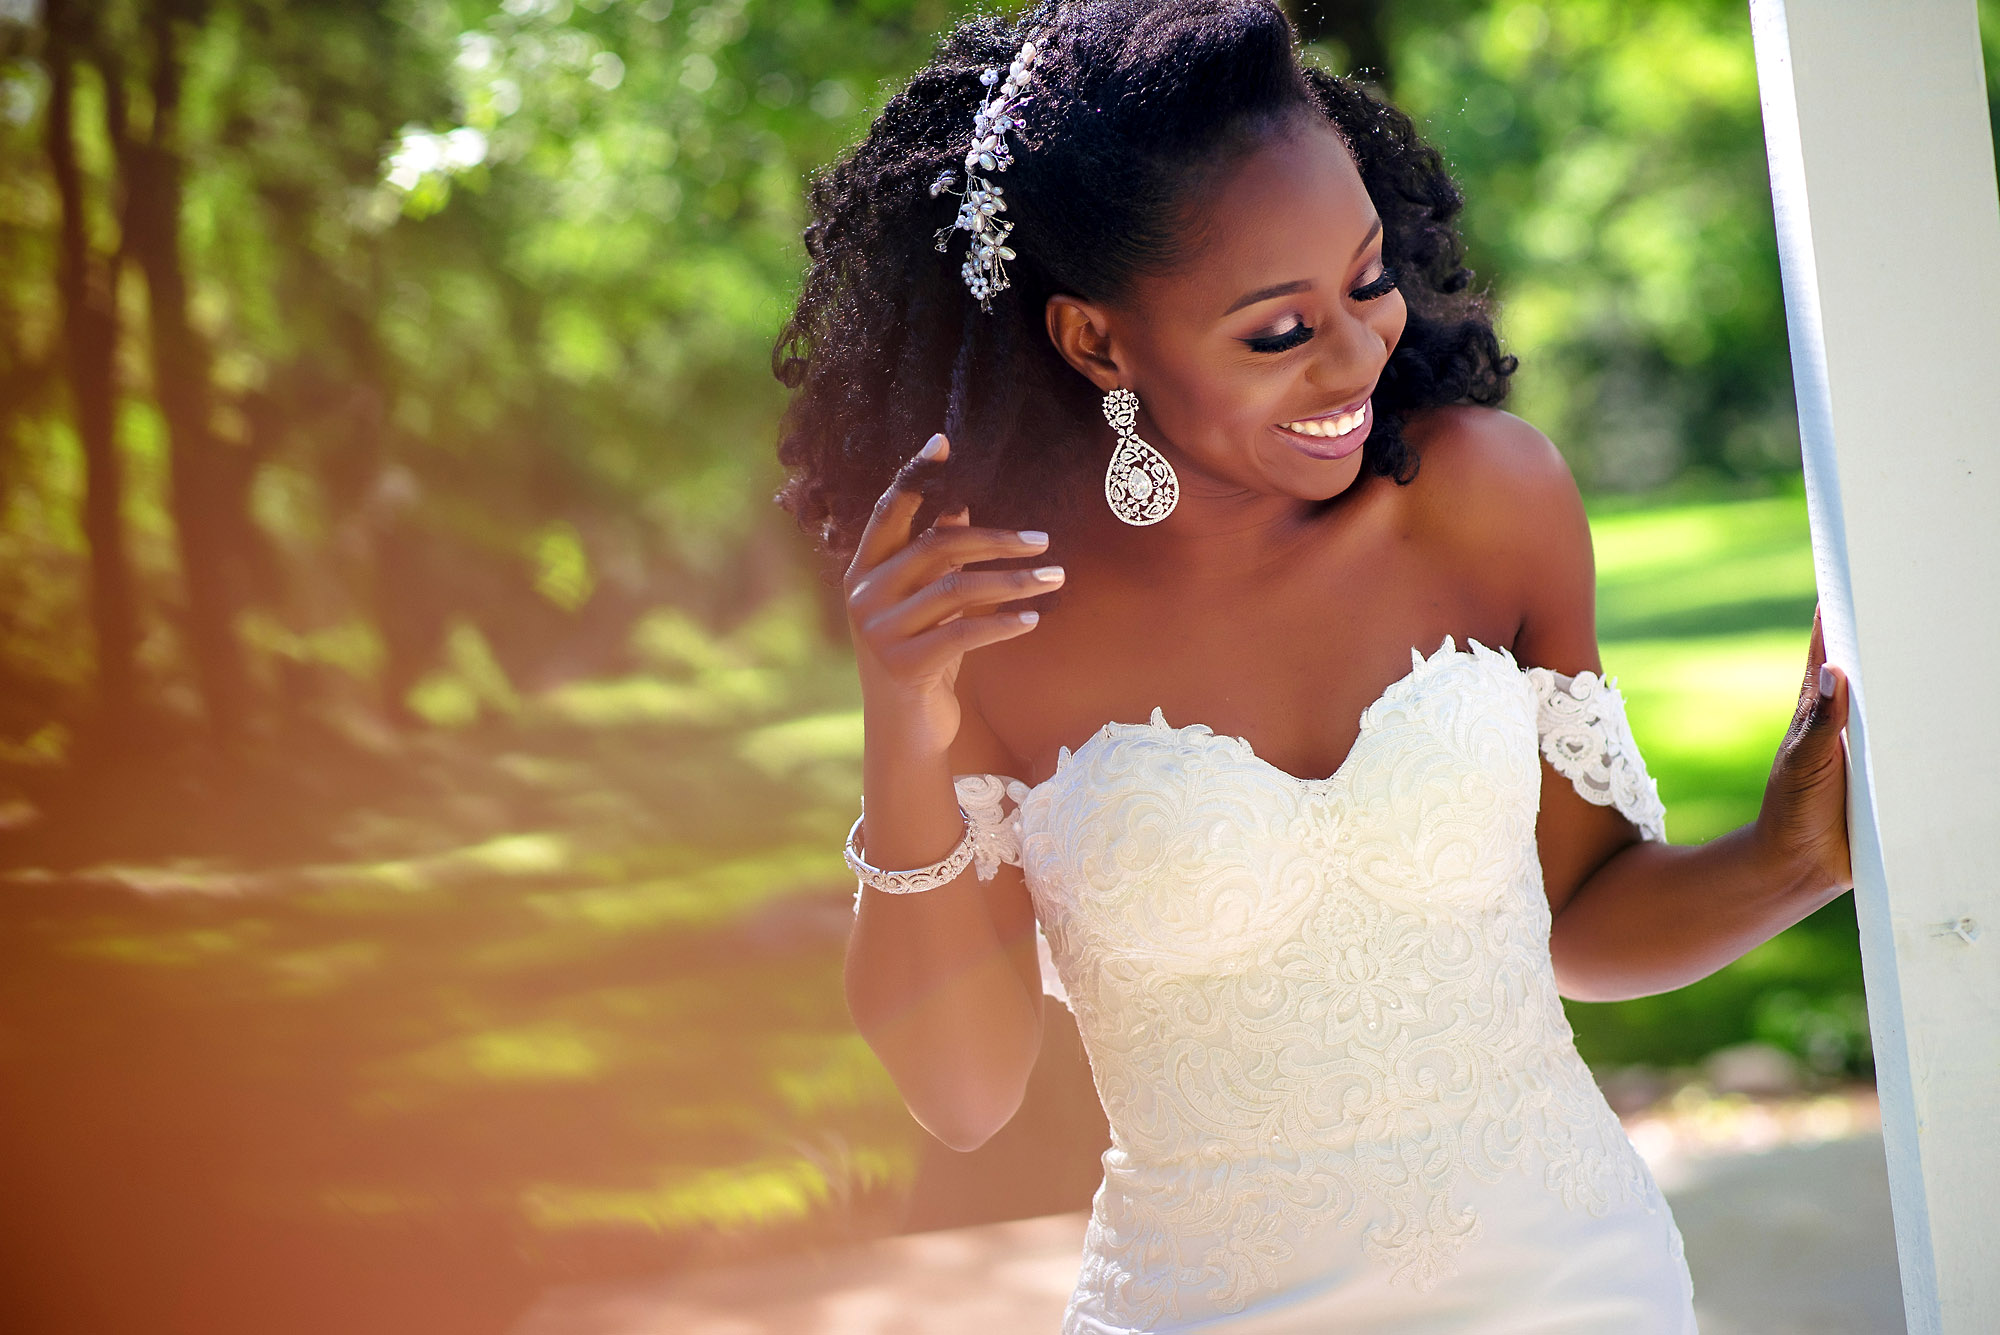 bride laughing during portrait session.jpg